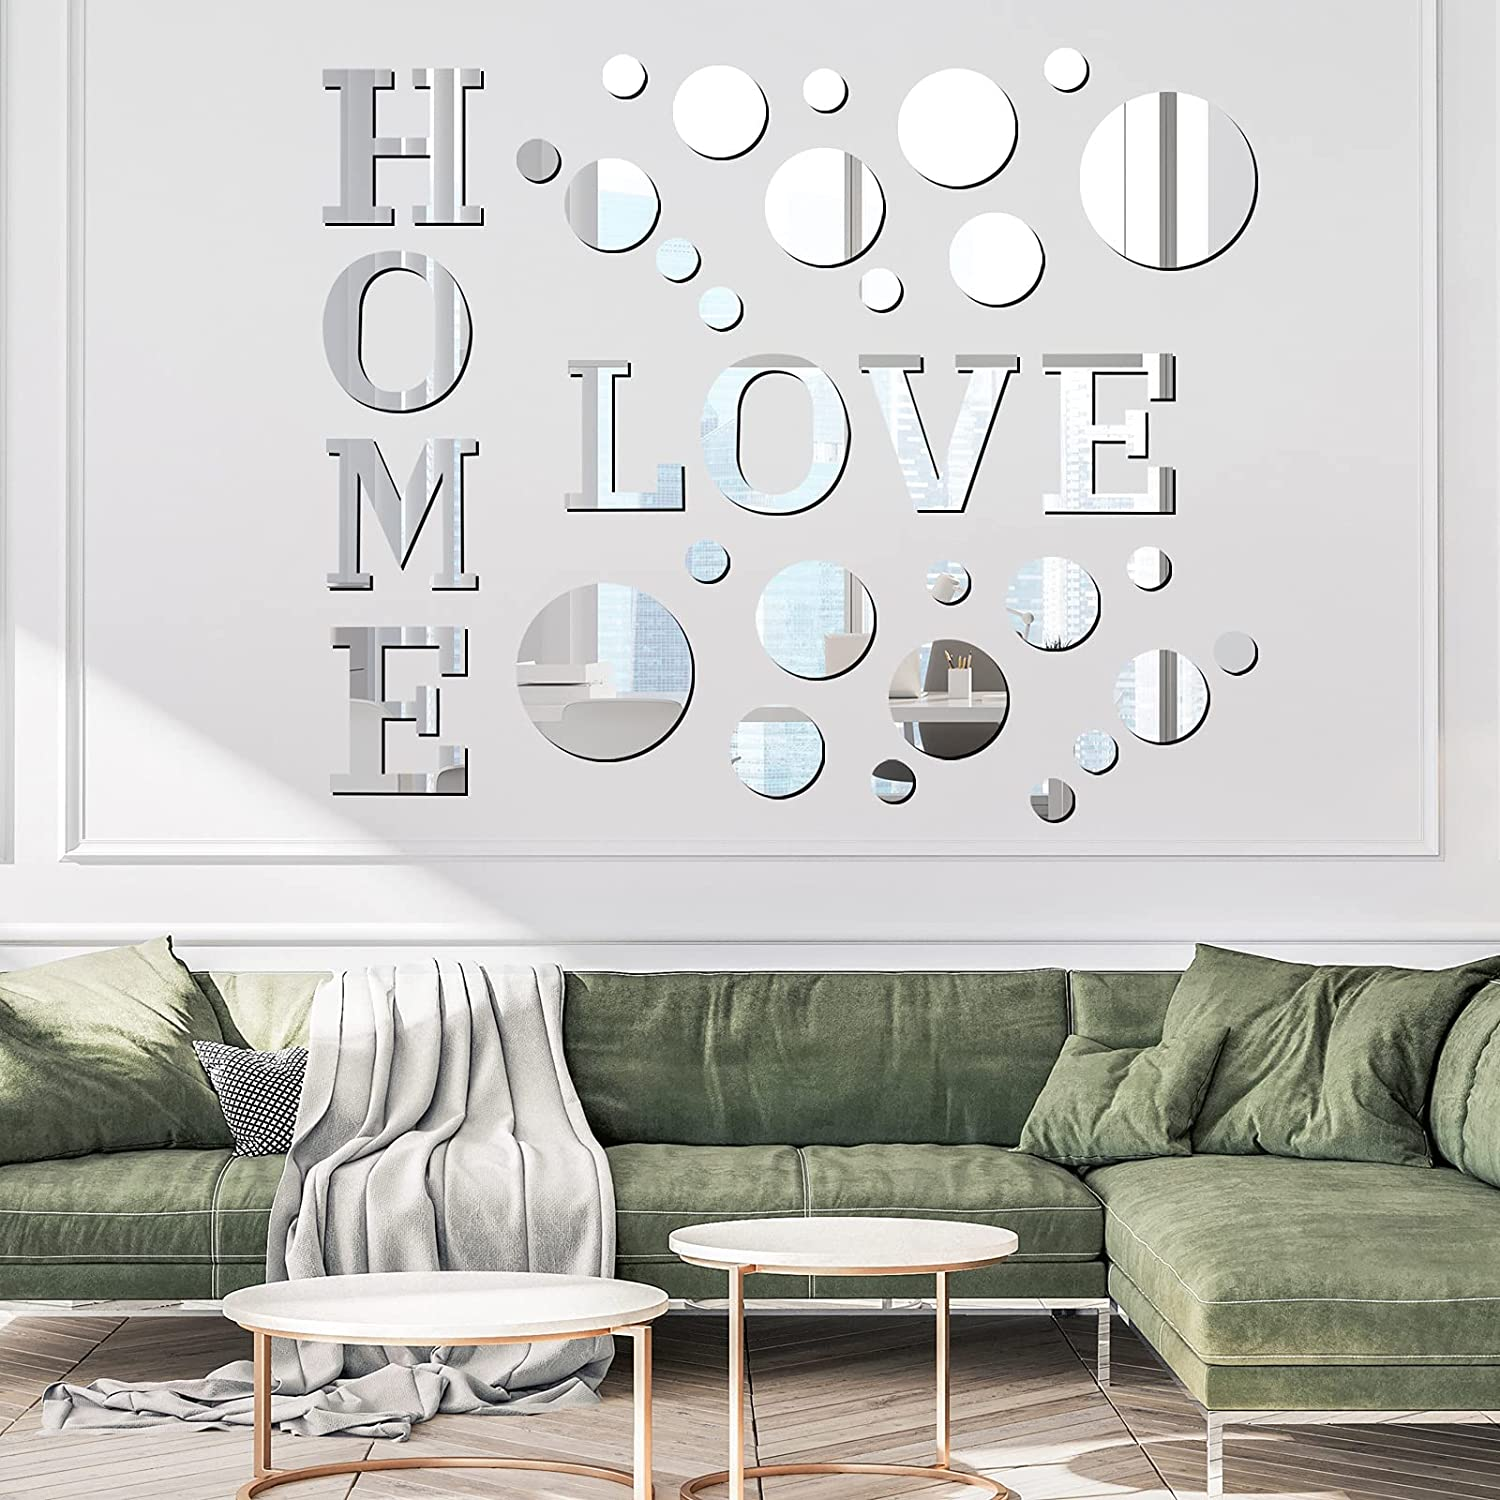 durony Home Acrylic Mirror Wall Stickers Home Love Letter Quotes Wall Stickers Letter and Round Mirror Stickers for Home Decor